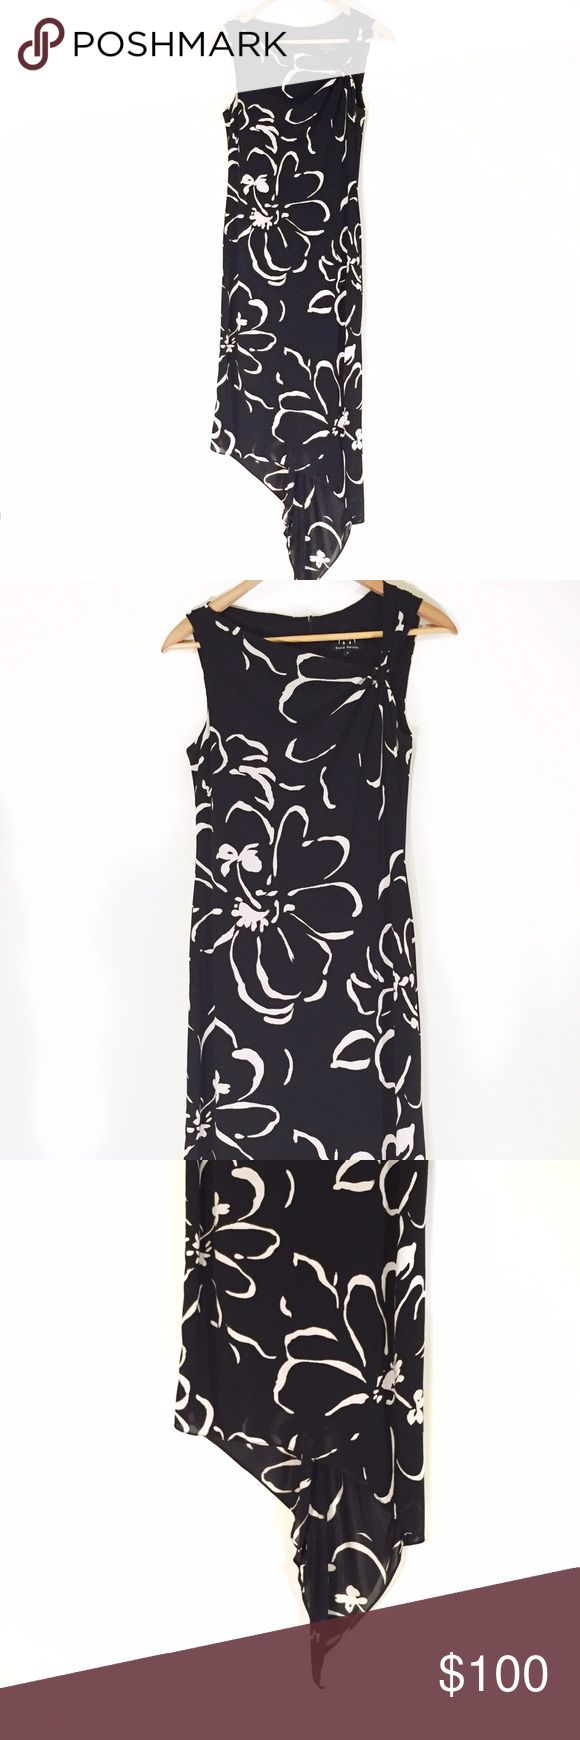 David Meister Asymmetrical black and white dress Floral light fabric. Gorgeous cocktail dress. Very elegant. Perfect condition David Meister Dresses Asymmetrical